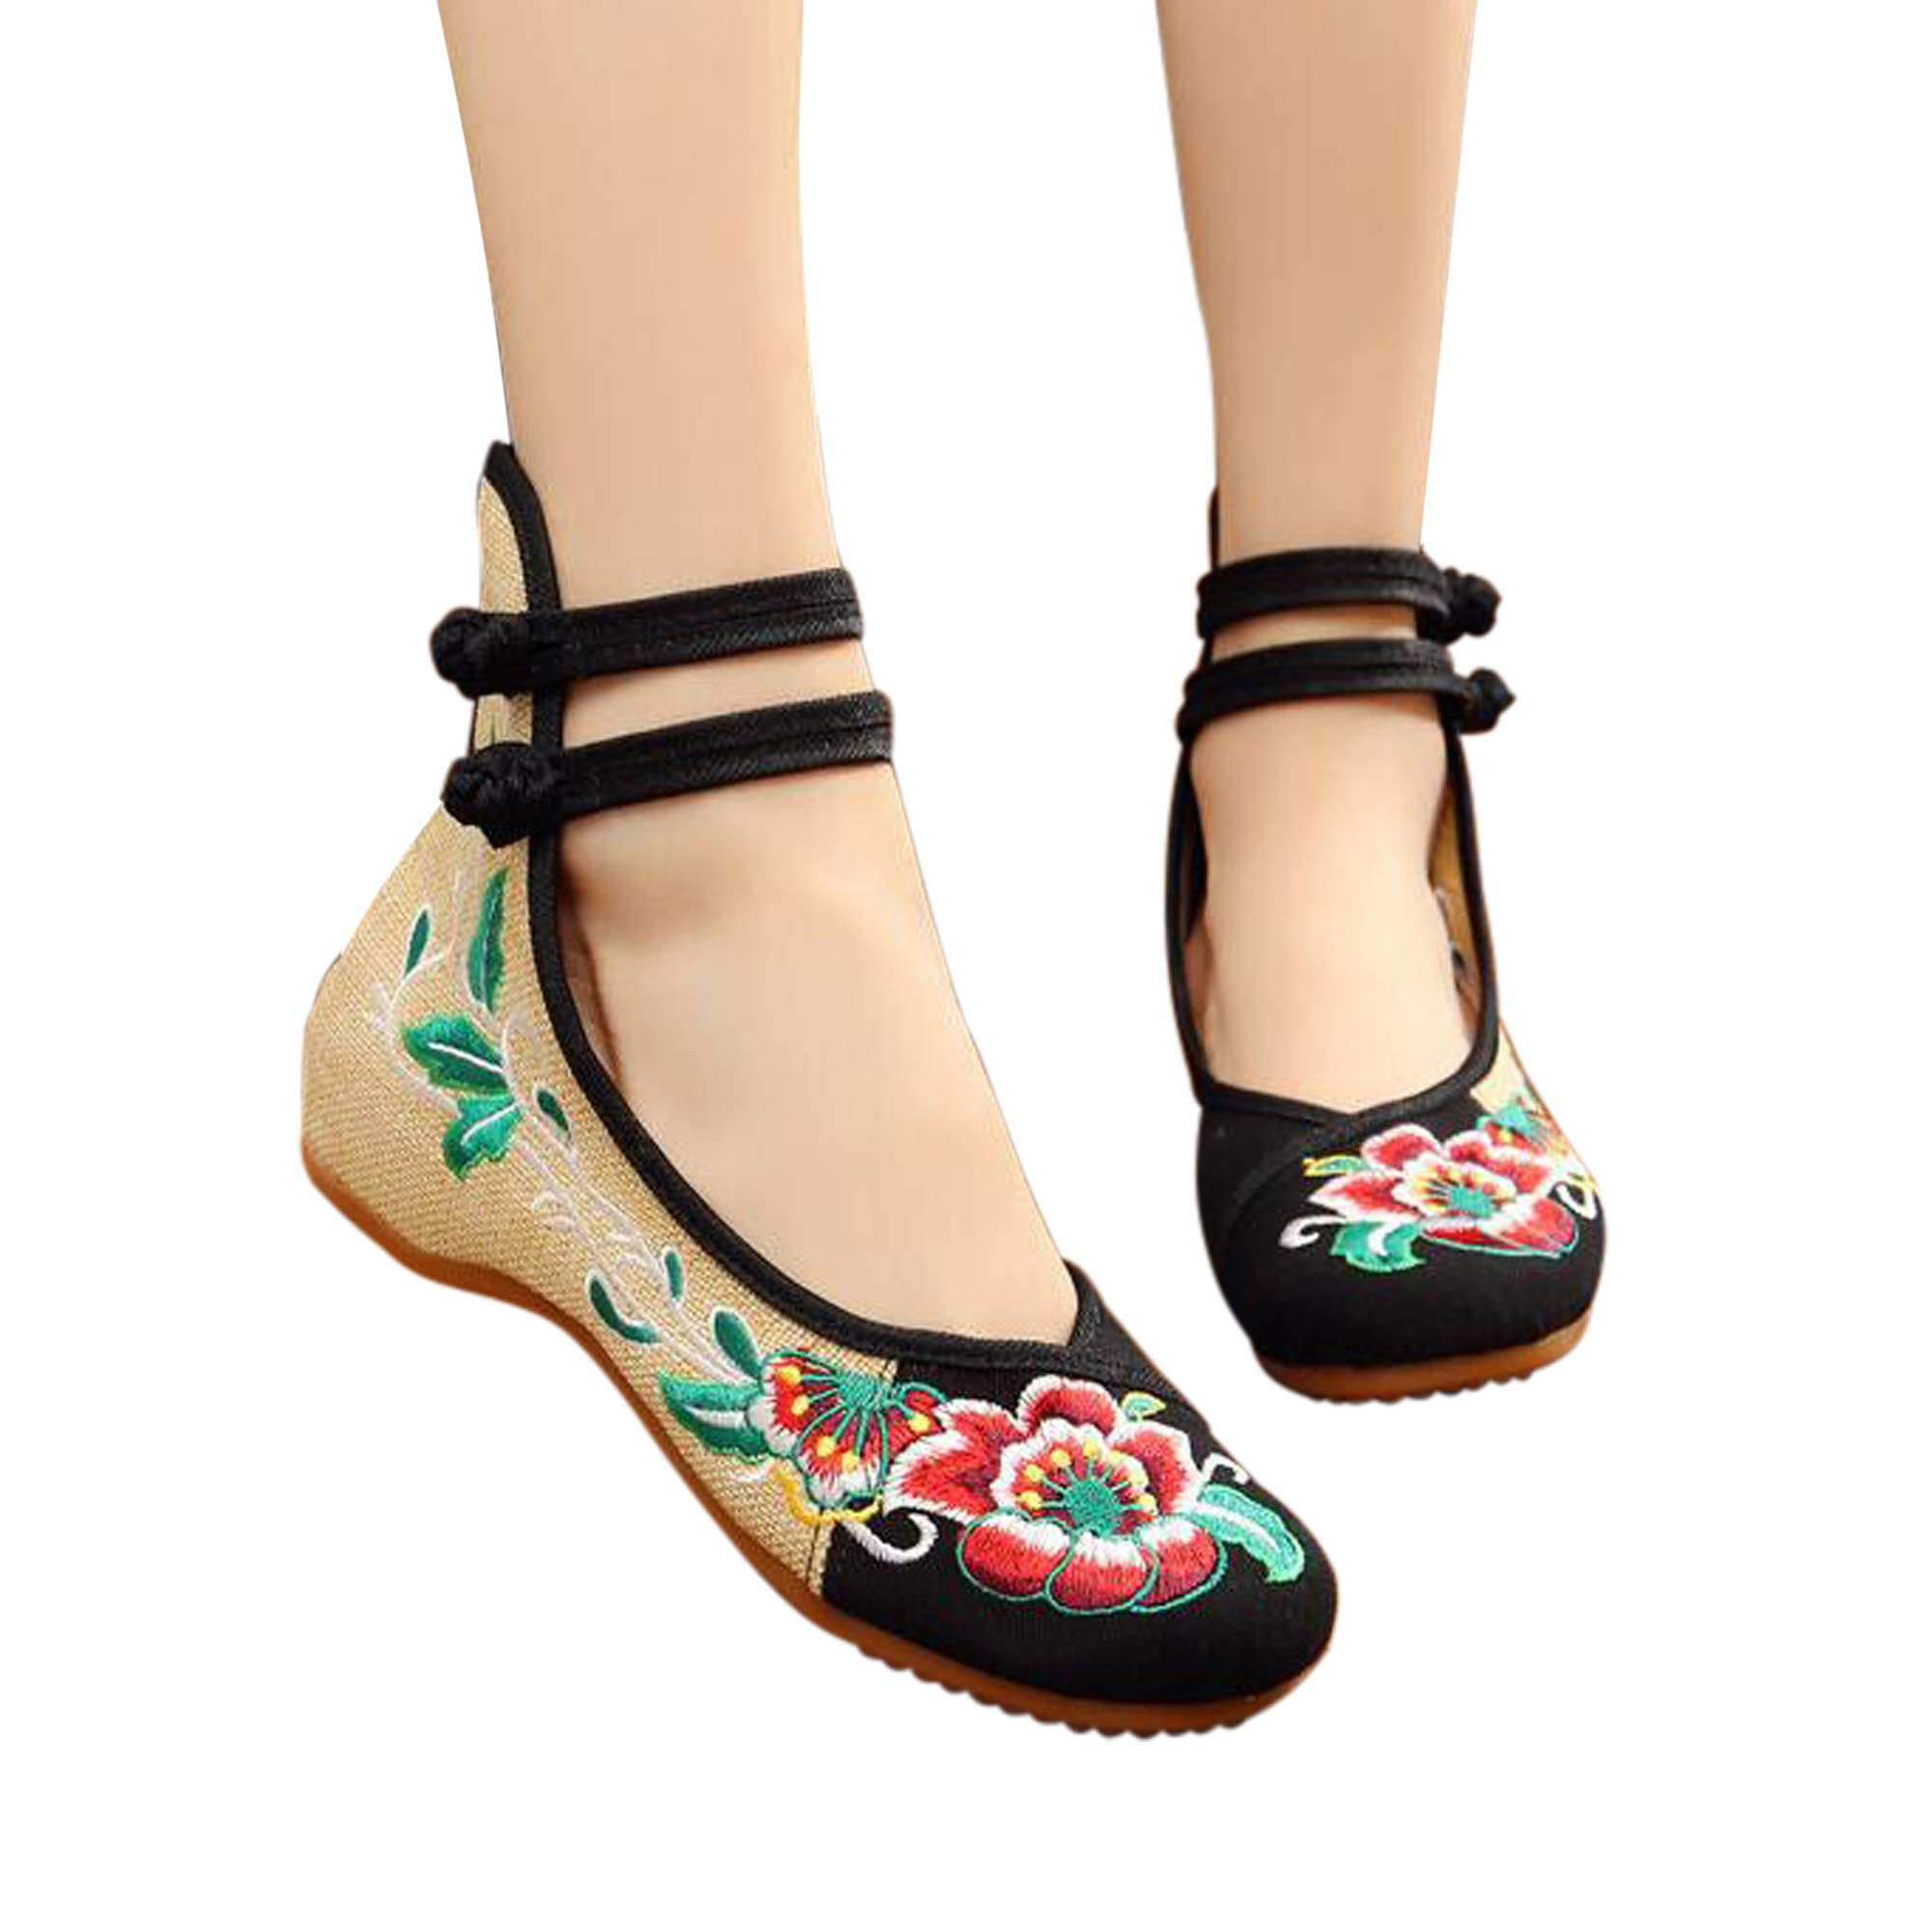 Embroidered Shoes Flats Loafers Women Ballet Low Heels Pumps Ballerina Fabric Cloth Canvas Height Increased Comfortable Chinese Flower Hightop Mary Jane Lace-up Vintage(6 B(M) US/CN37/23.5CM,Black)